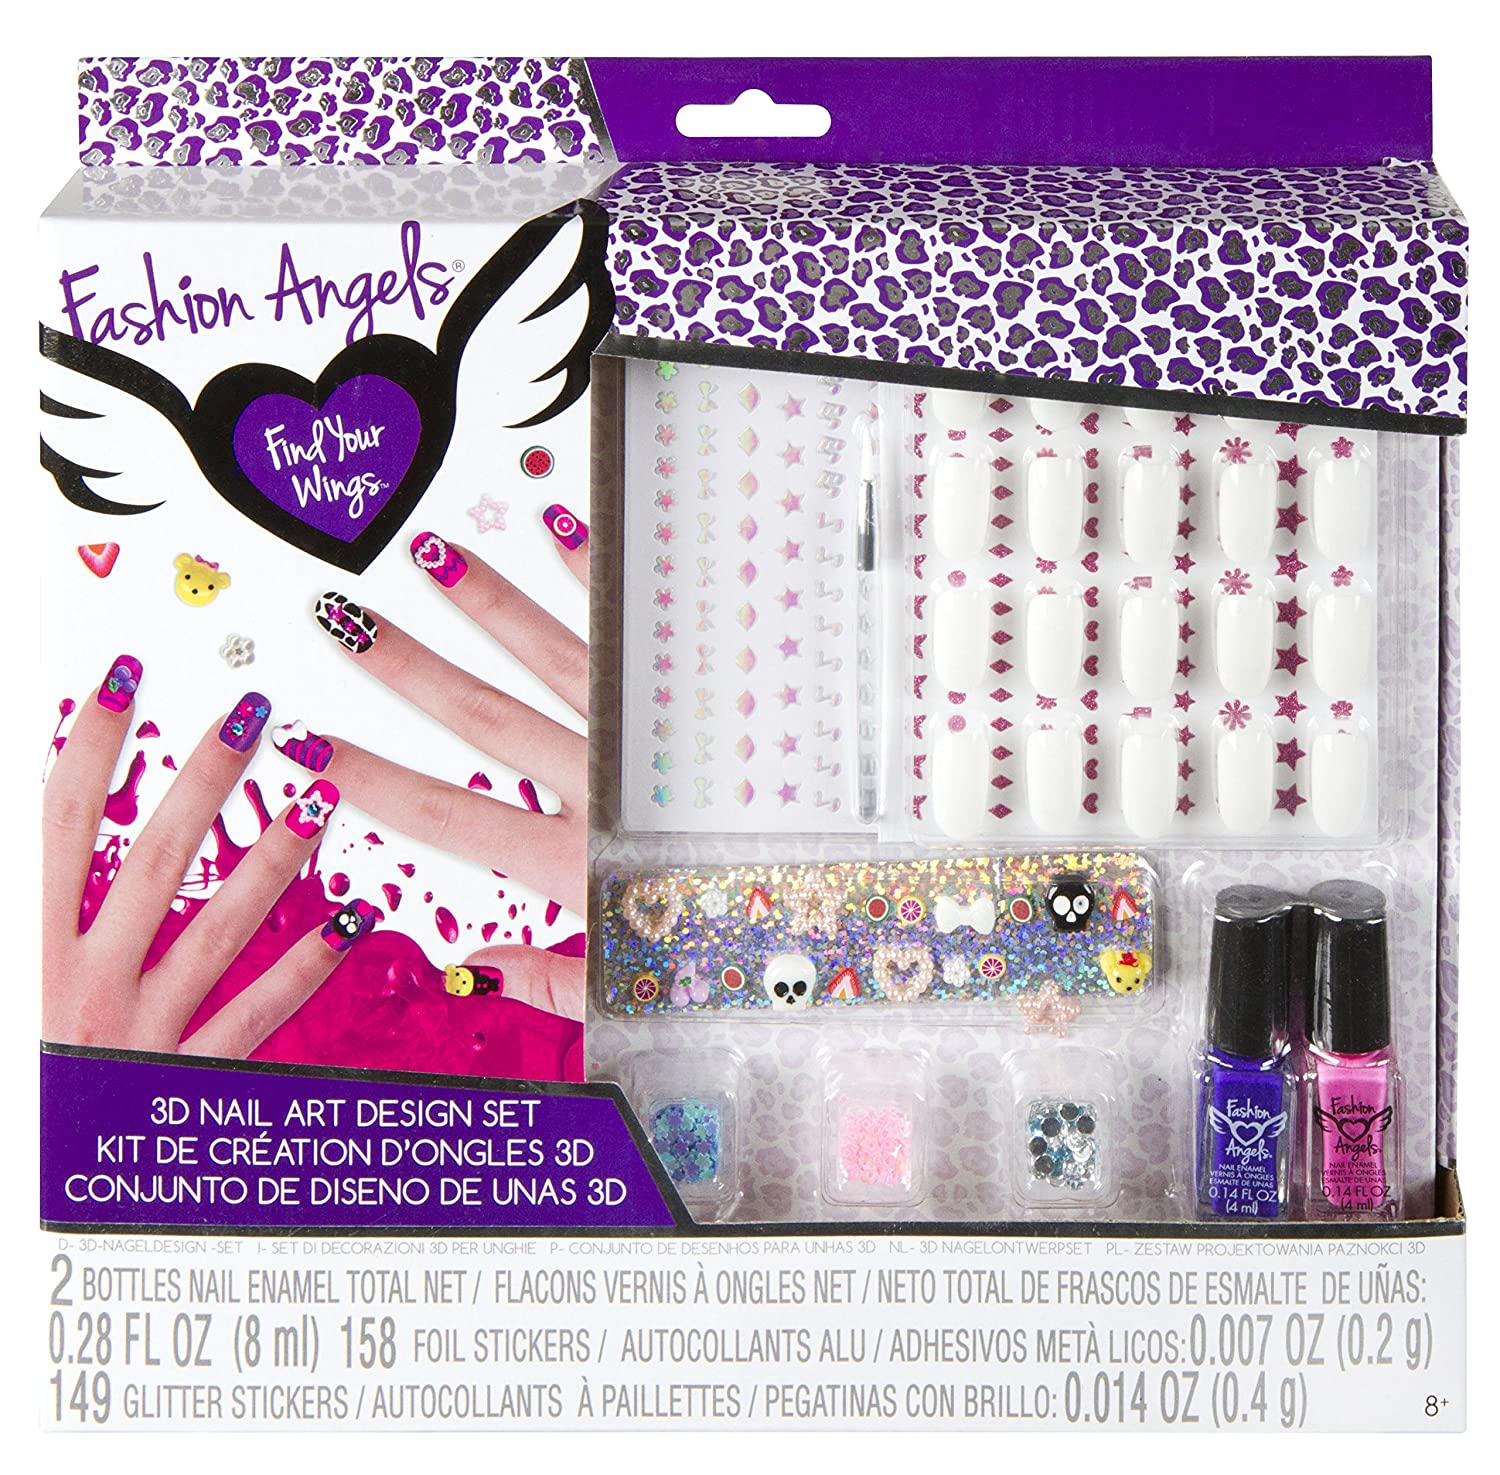 Fashion Angels 3D Nail Design Set: Amazon.co.uk: Toys & Games